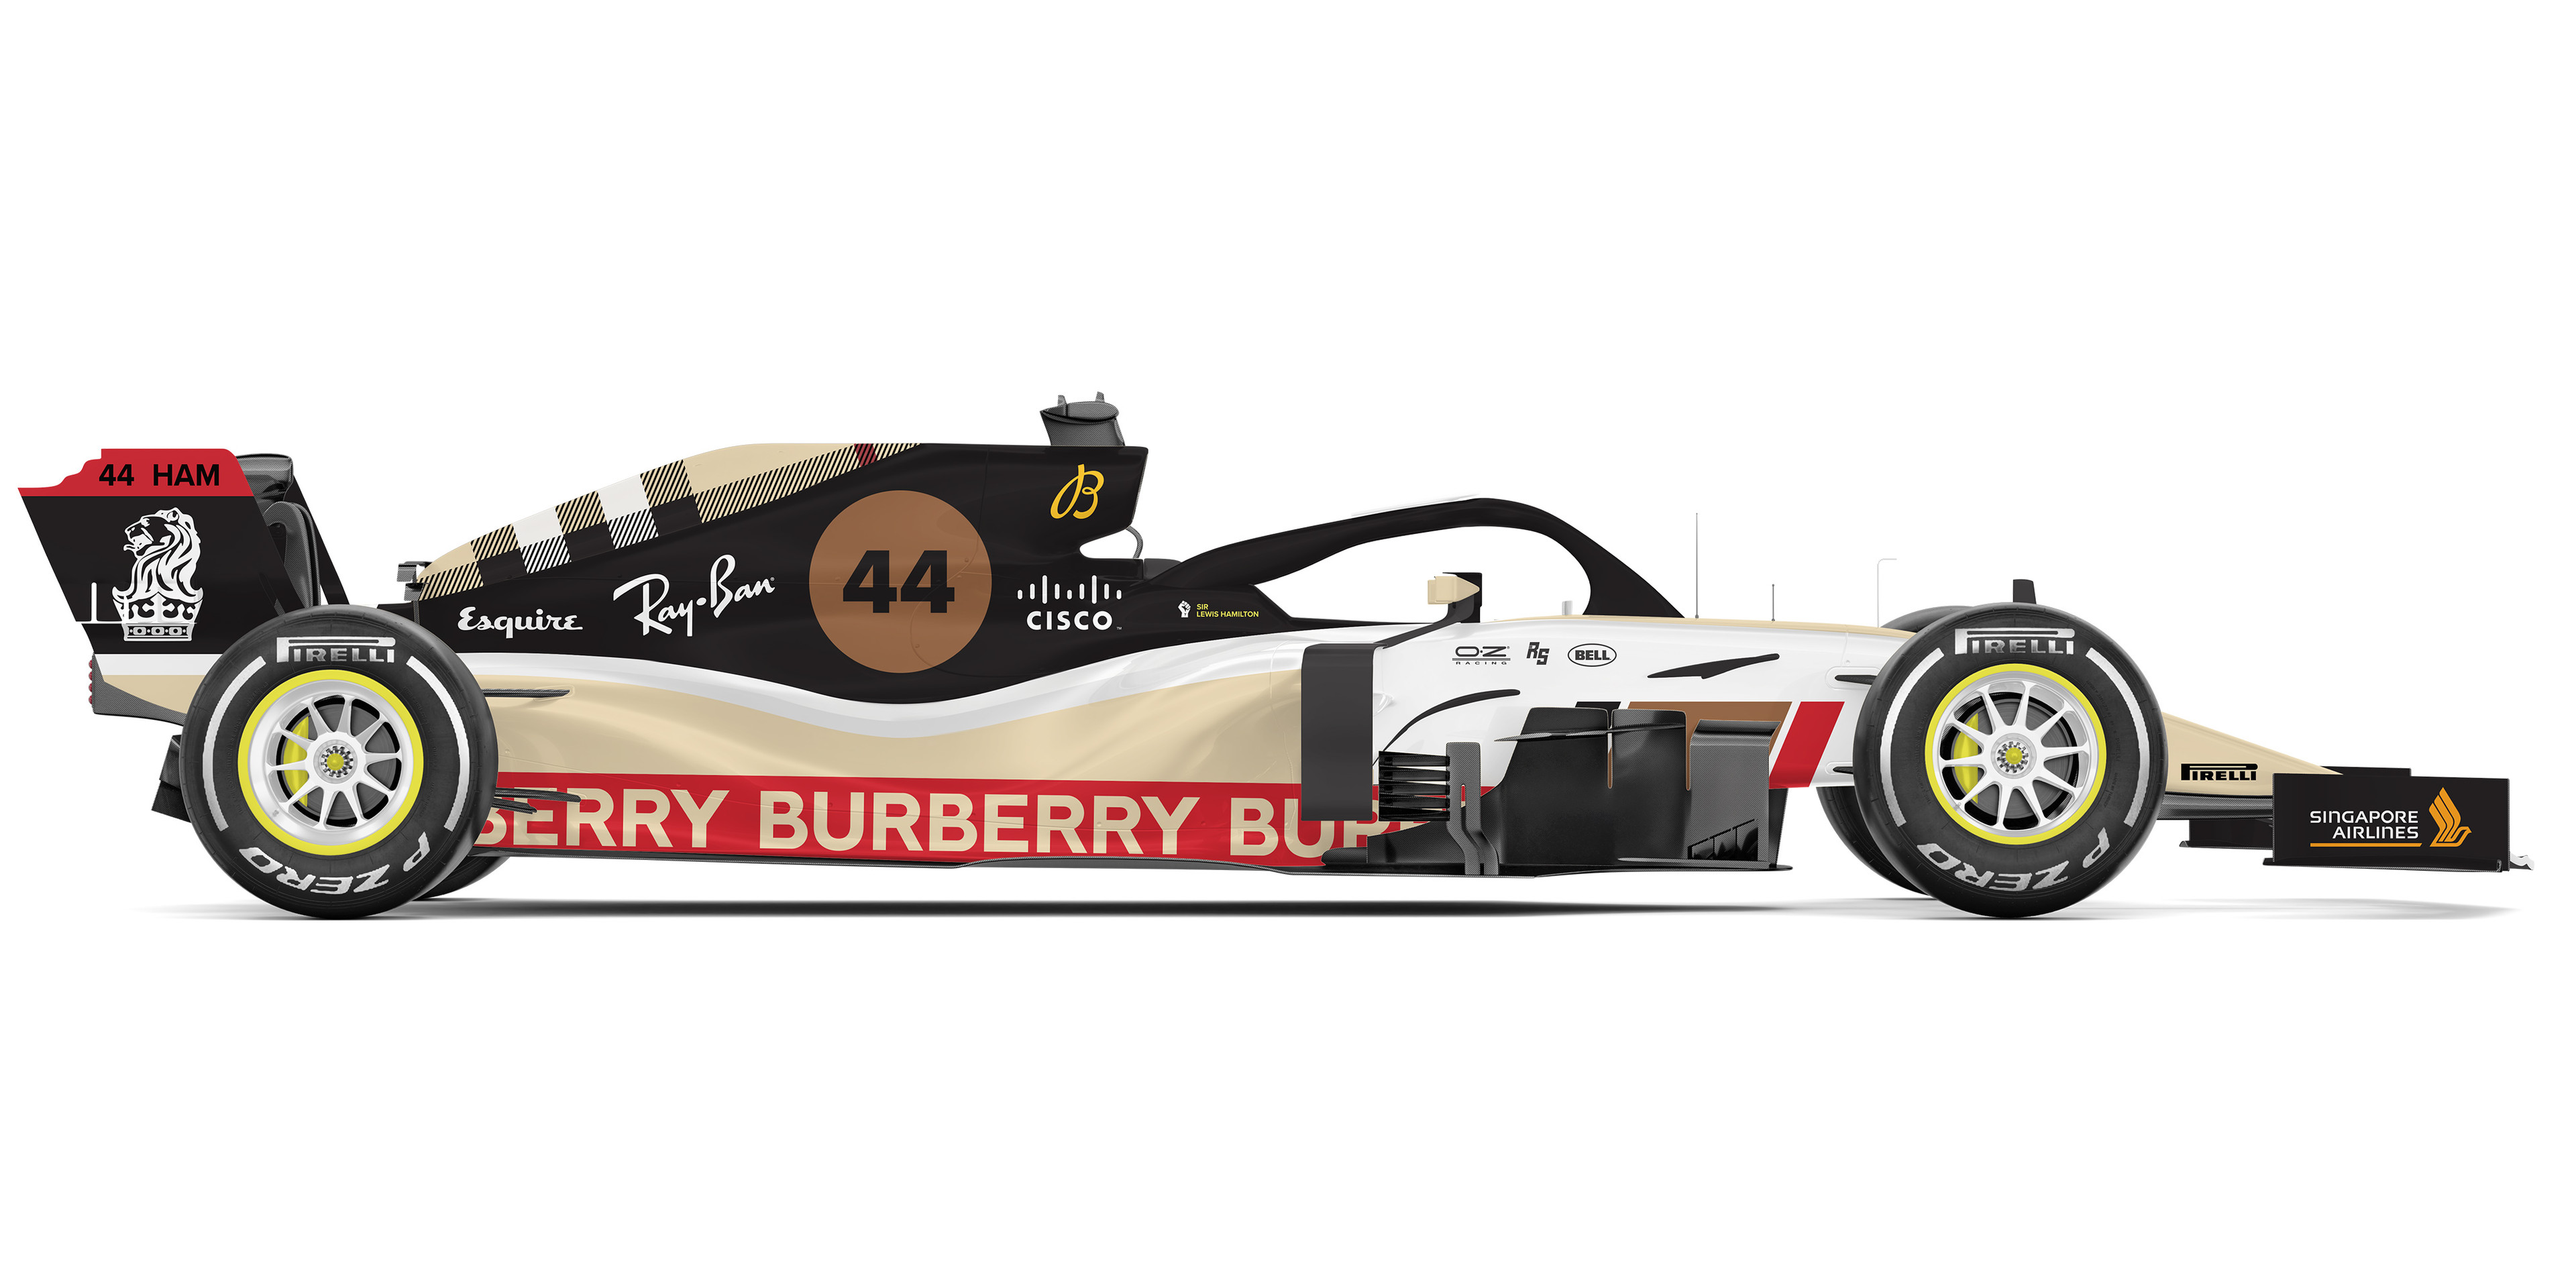 Burberry Livery Concept-Side